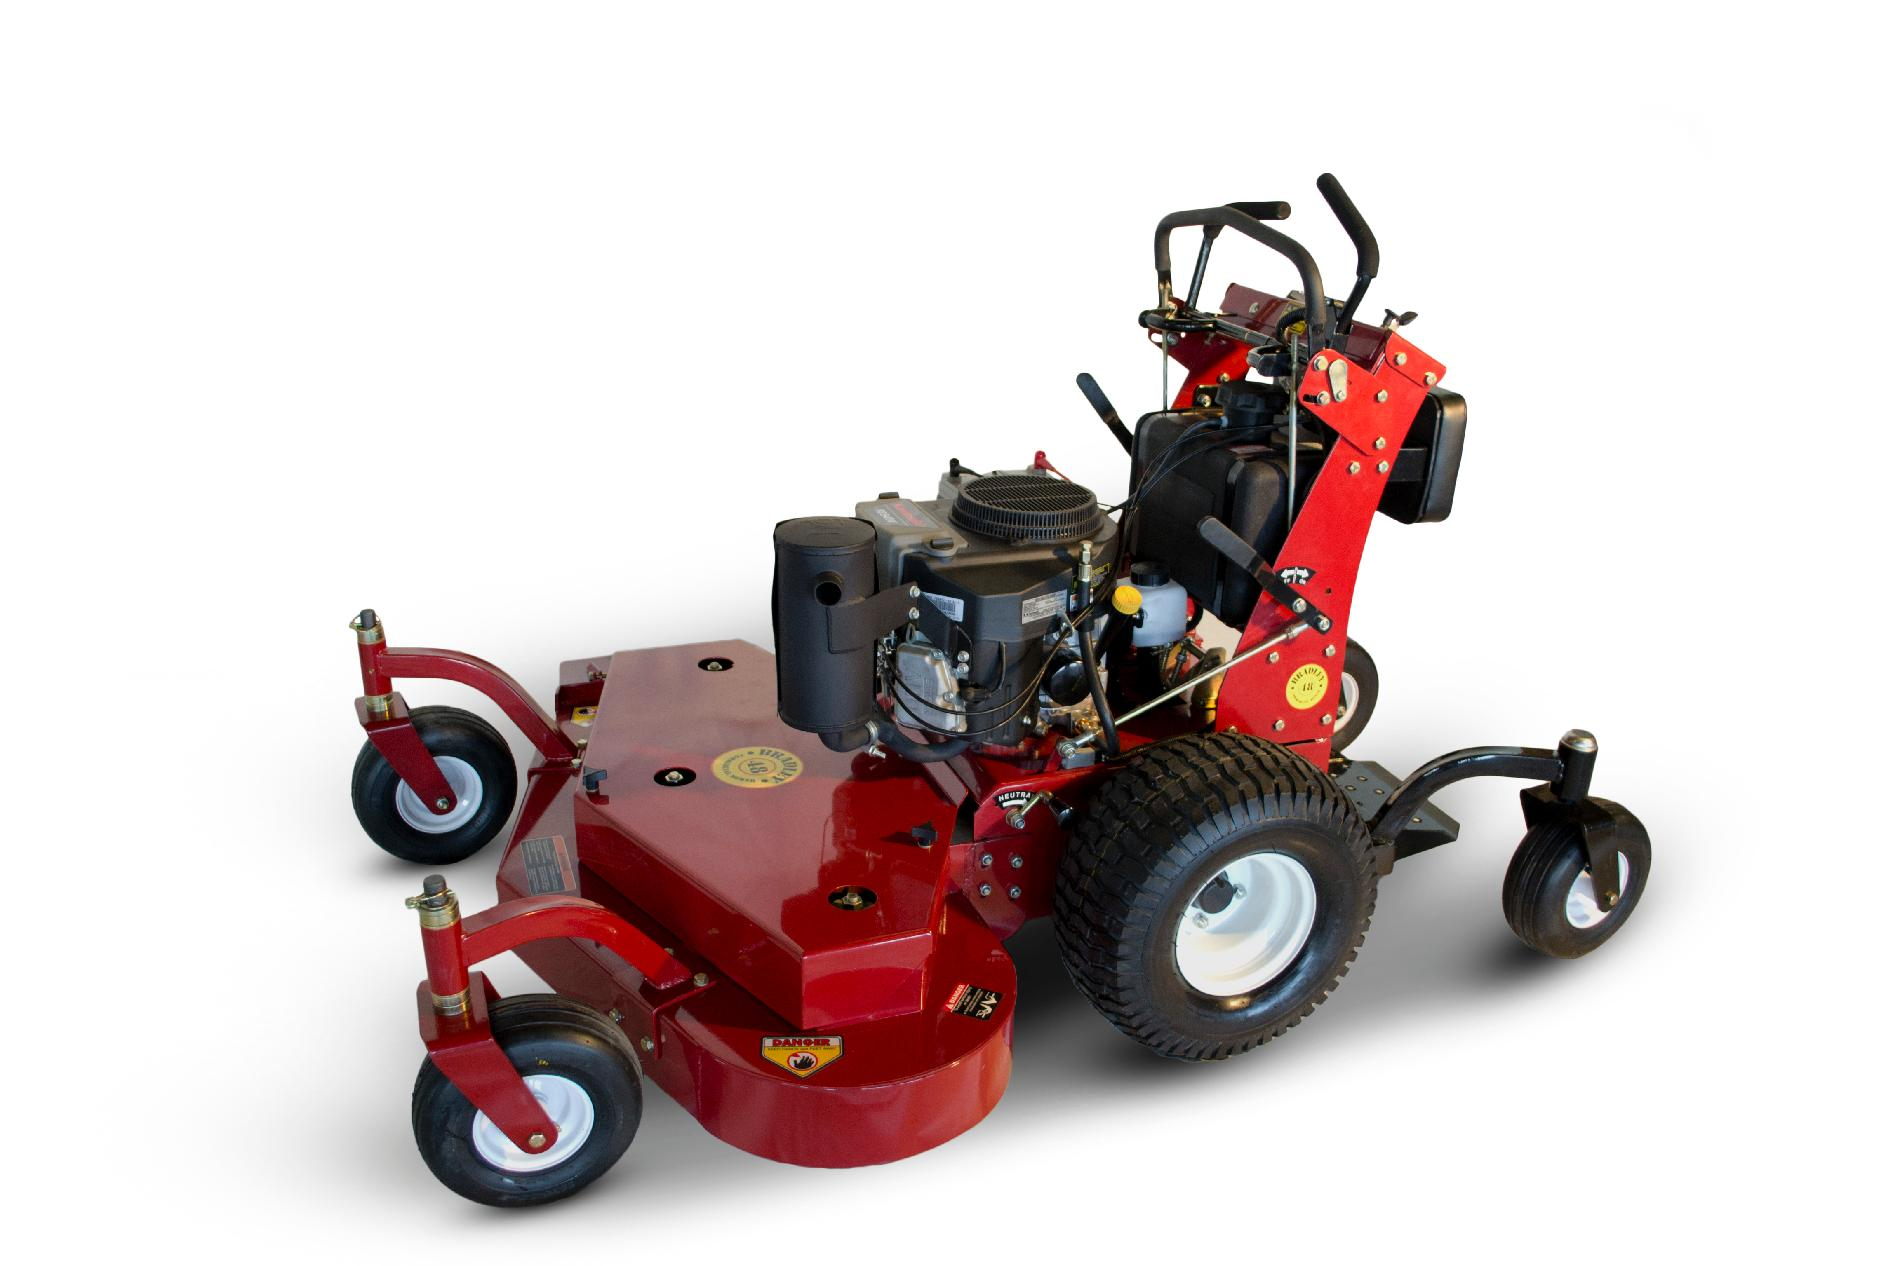 Bradley 48″ commercial walk behind mower